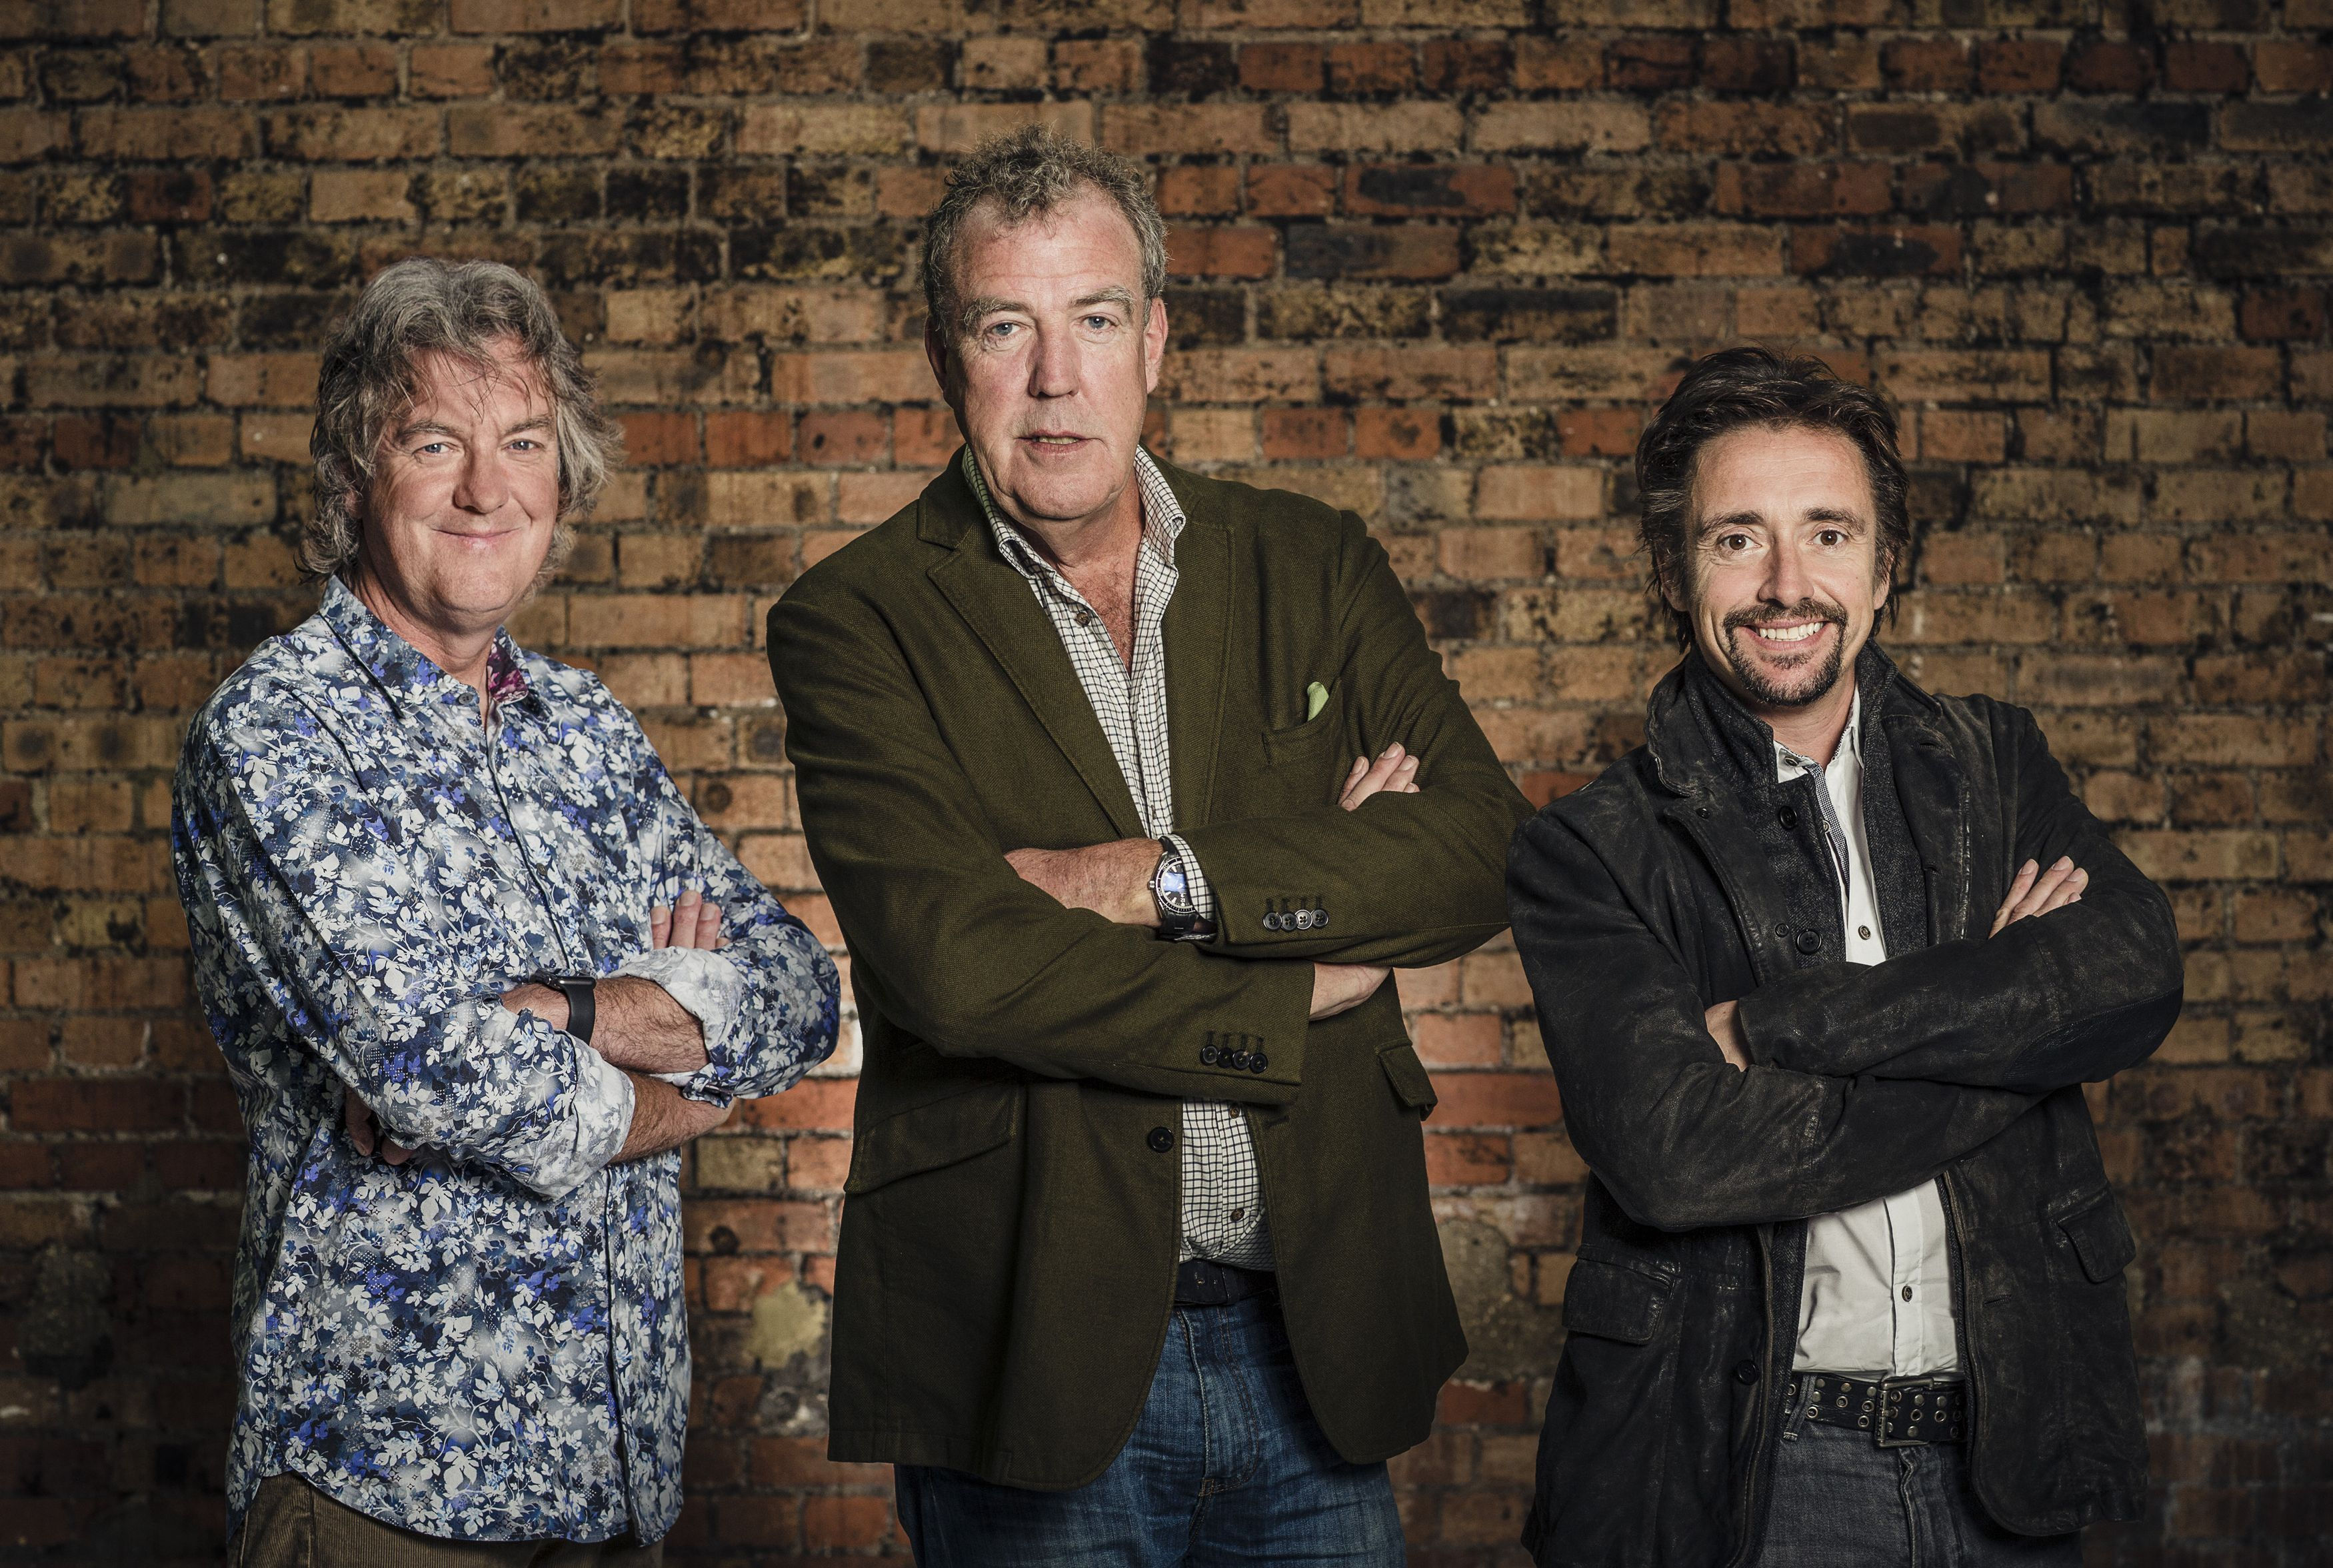 James May, Jeremy Clarkson and Richard Hammond (Amazon Prime Video/Press Association Images)